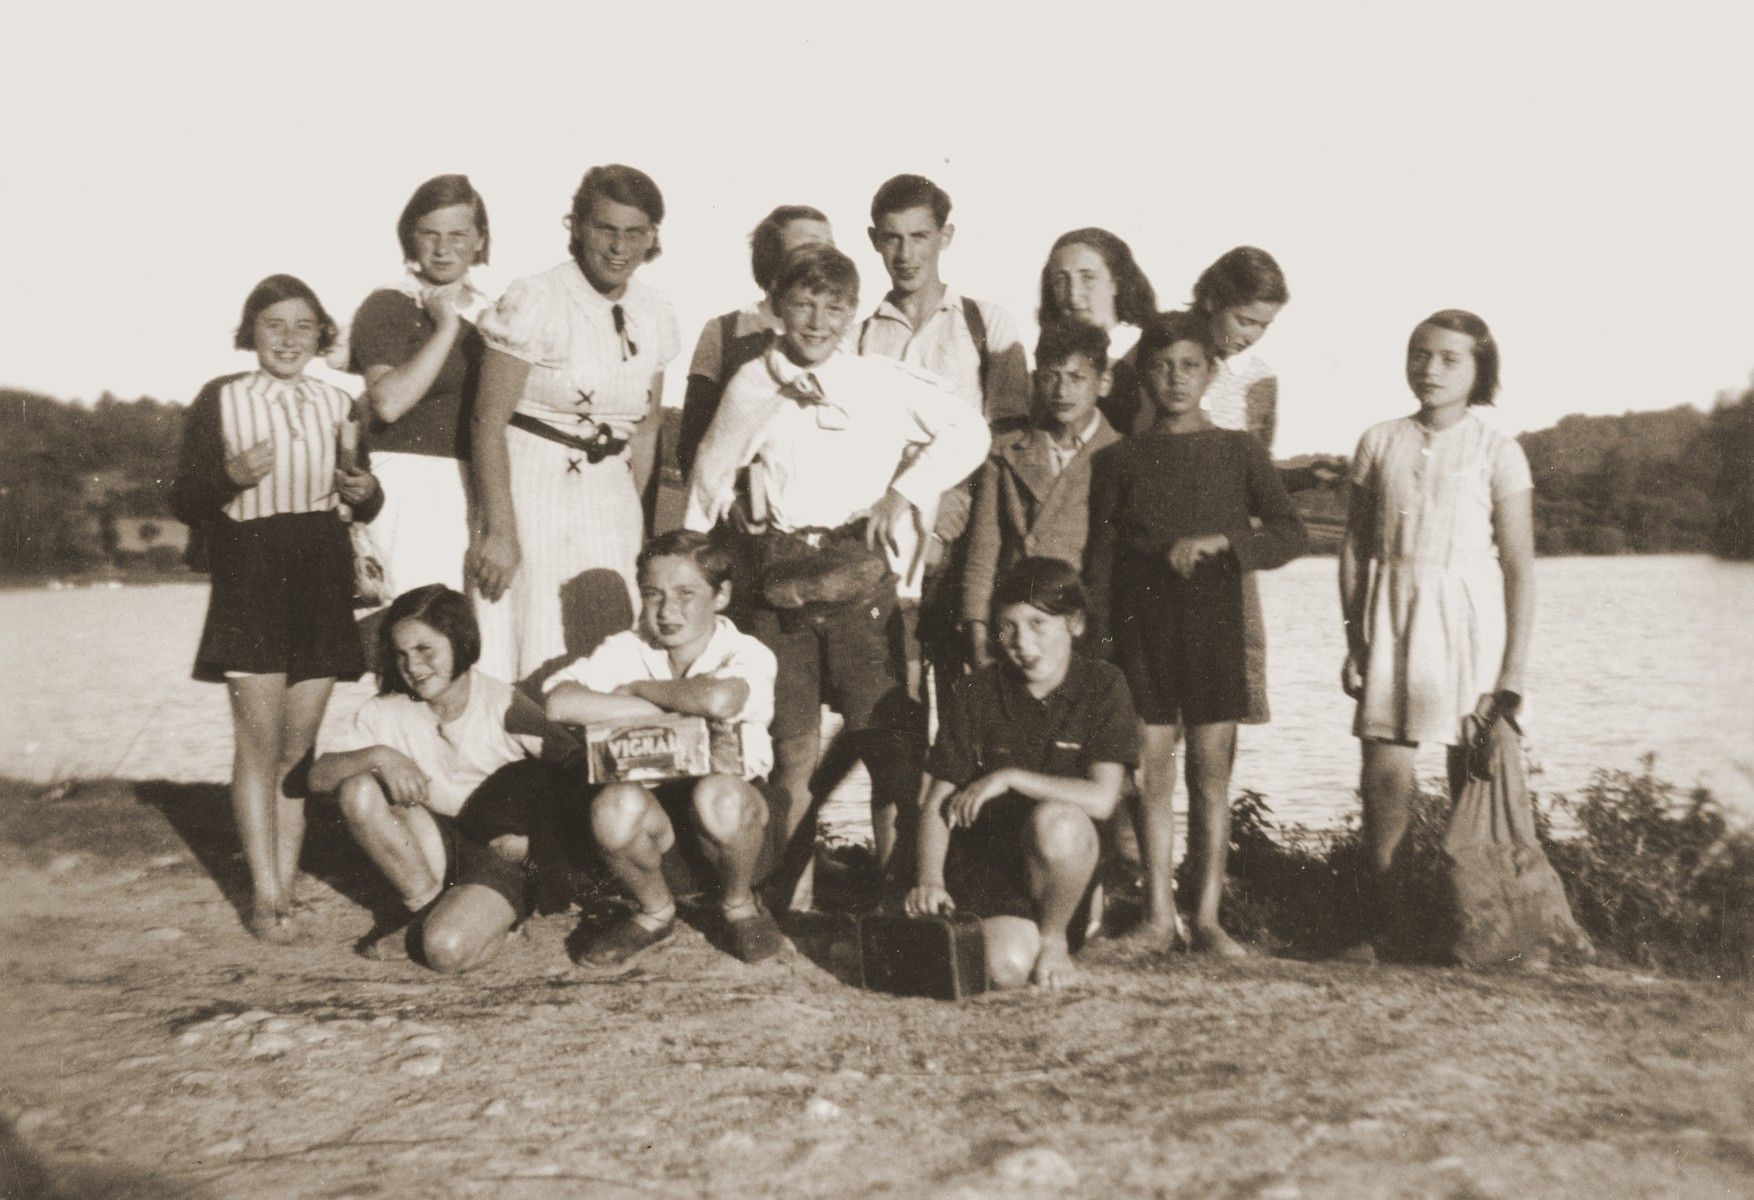 Group portrait of Jewish youth from the OSE children's home at Chateau du Chaumont, on an outing.    Among those pictured is Walter Karliner (back row, second from the left), Kurt Siegfried Hirschhorn (center, fourth from right) and Joseph Polzer, center, with  a pair of shoes hanging around his waist.  Kurt Hirschhorn was deported in August 1942.